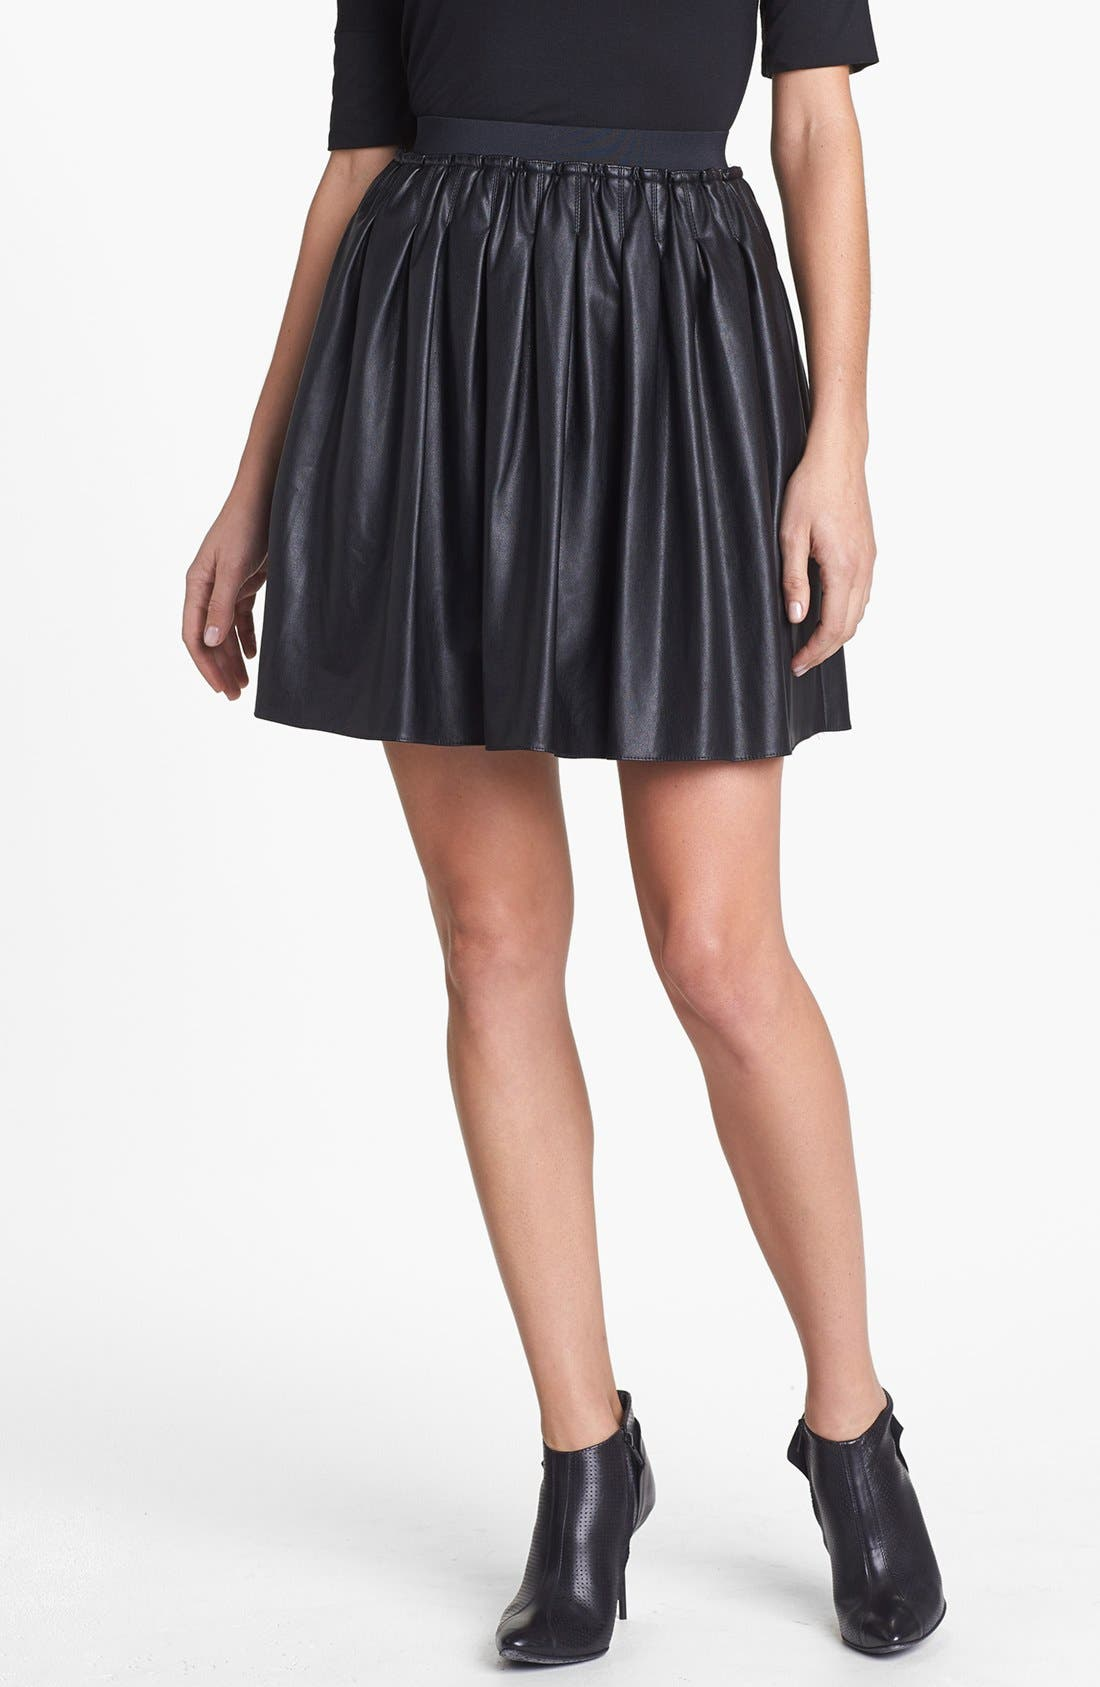 Alternate Image 1 Selected - Pink Tartan 'Moss' Faux Leather Skirt